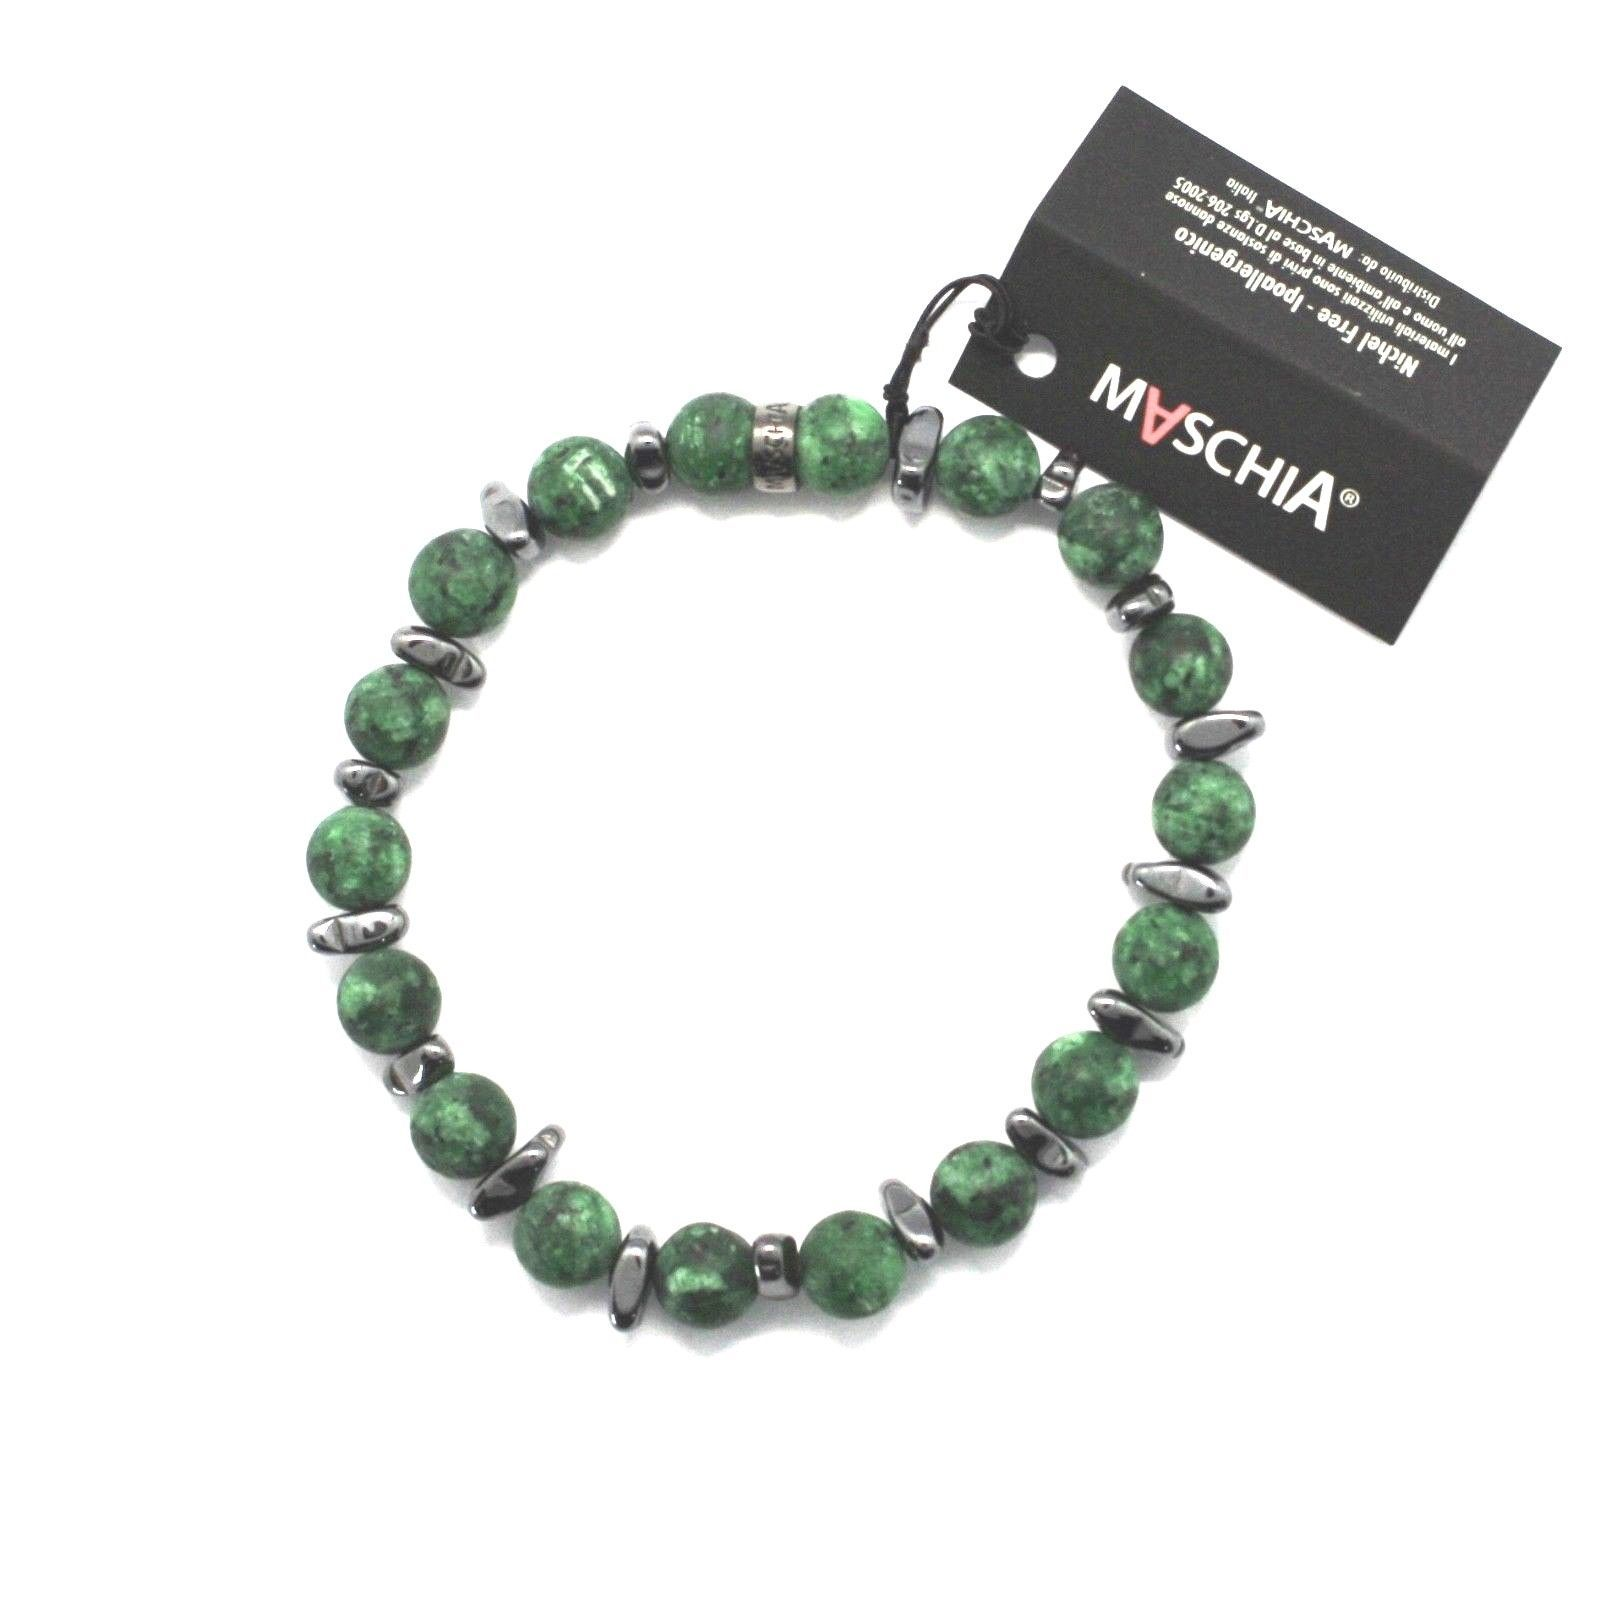 SILVER 925 BRACELET WITH HEMATITE AND JASPER BWI-1 MADE IN ITALY BY MASCHIA